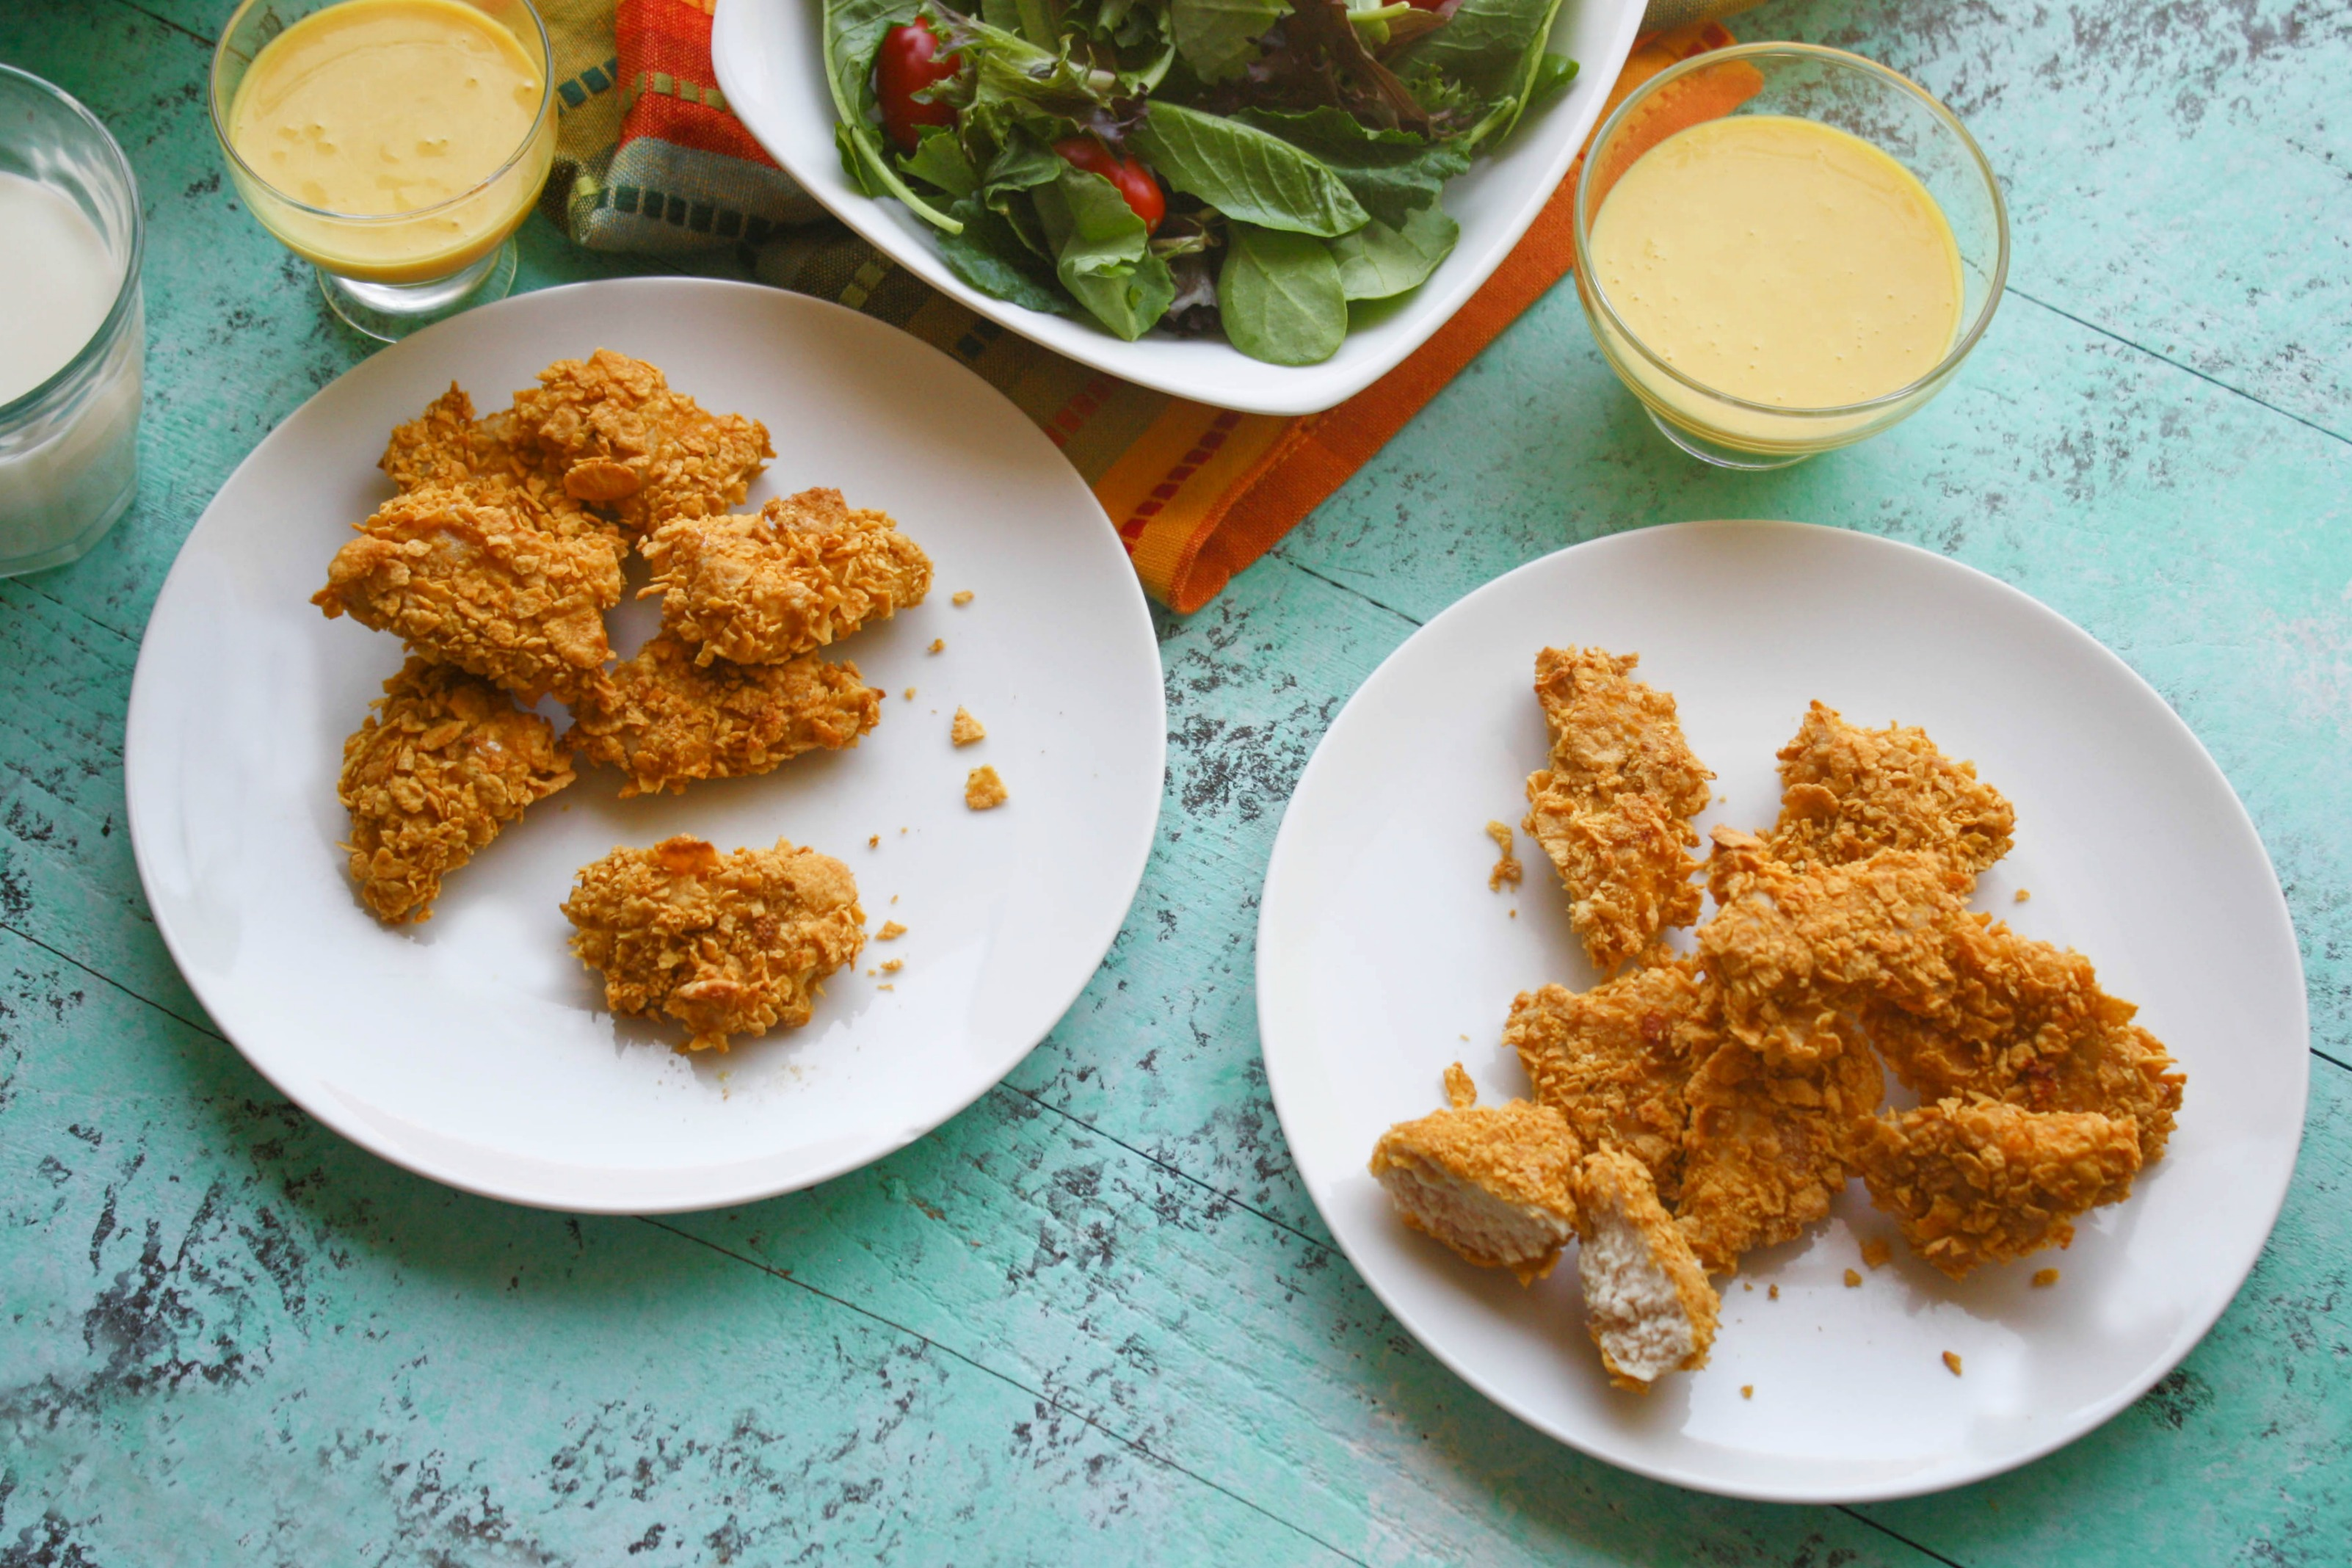 Crunchy Oven Baked Chicken Nuggets with Honey Mustard Sauce are perfect for kids of all ages! Everyone will love this chicken dish for dinner!